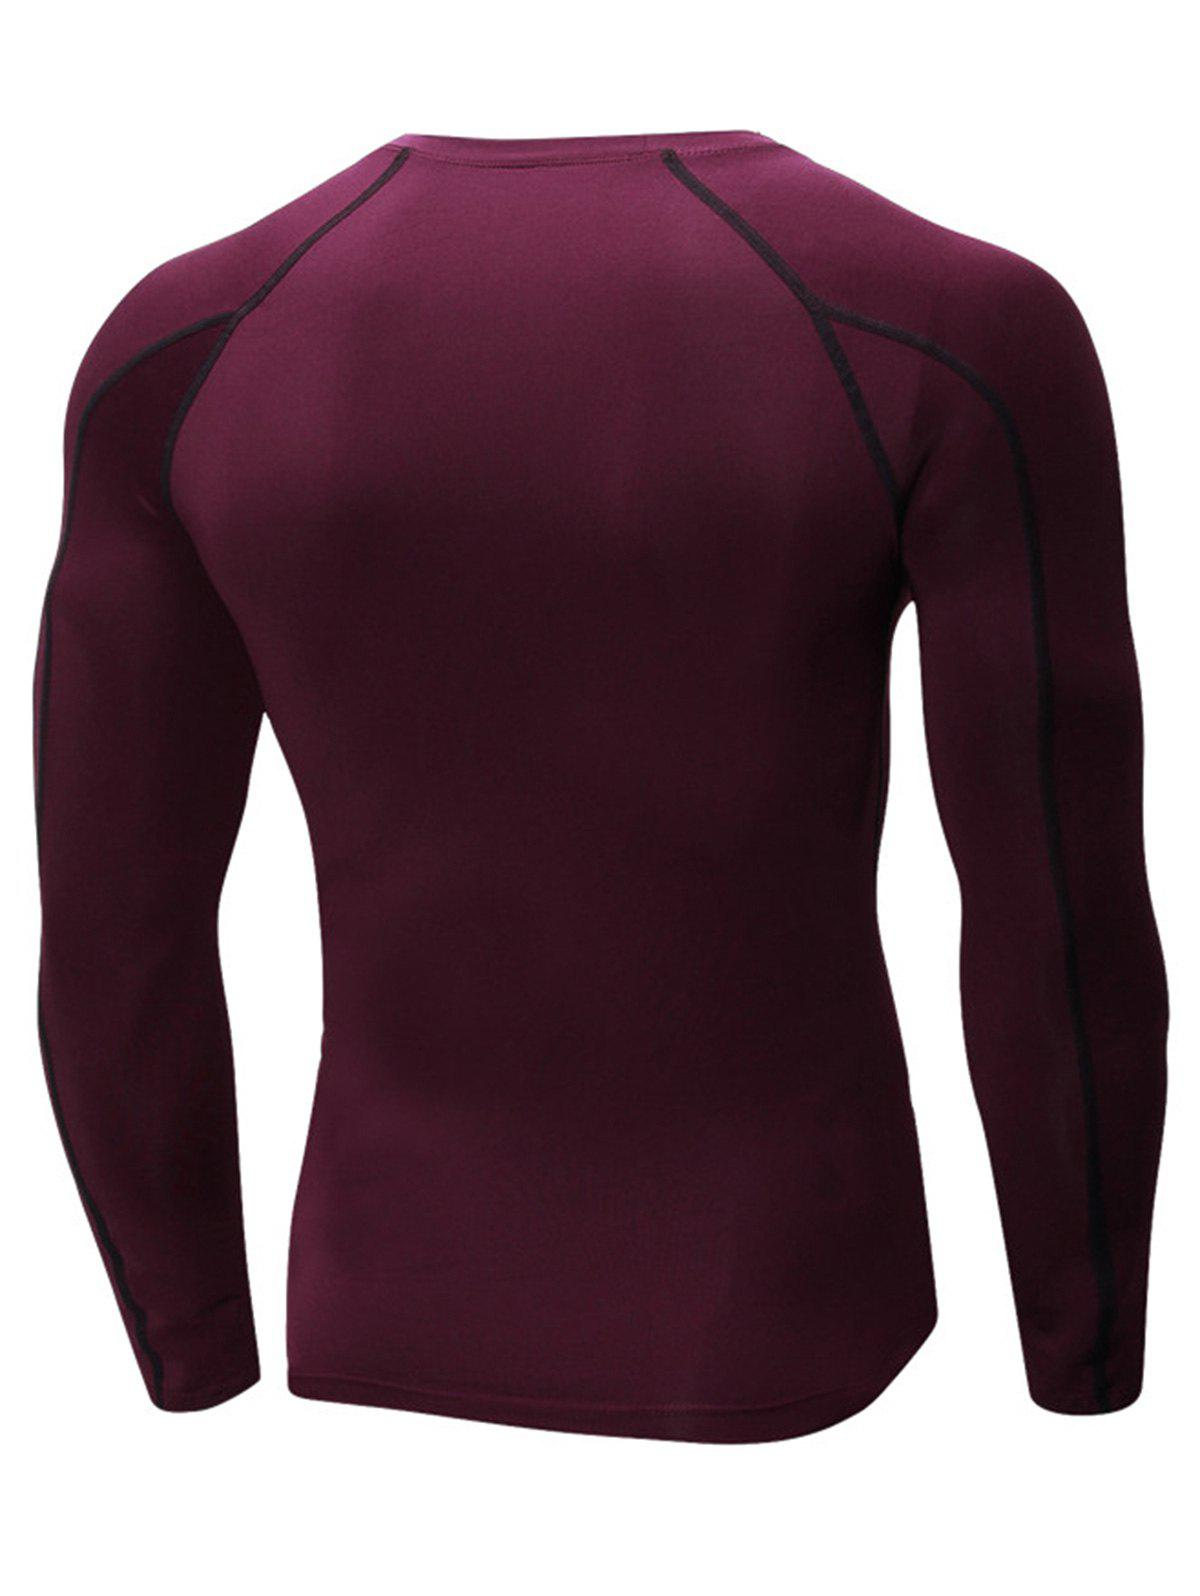 Stretchy Quick Dry Suture Long Sleeve T-shirt - WINE RED L